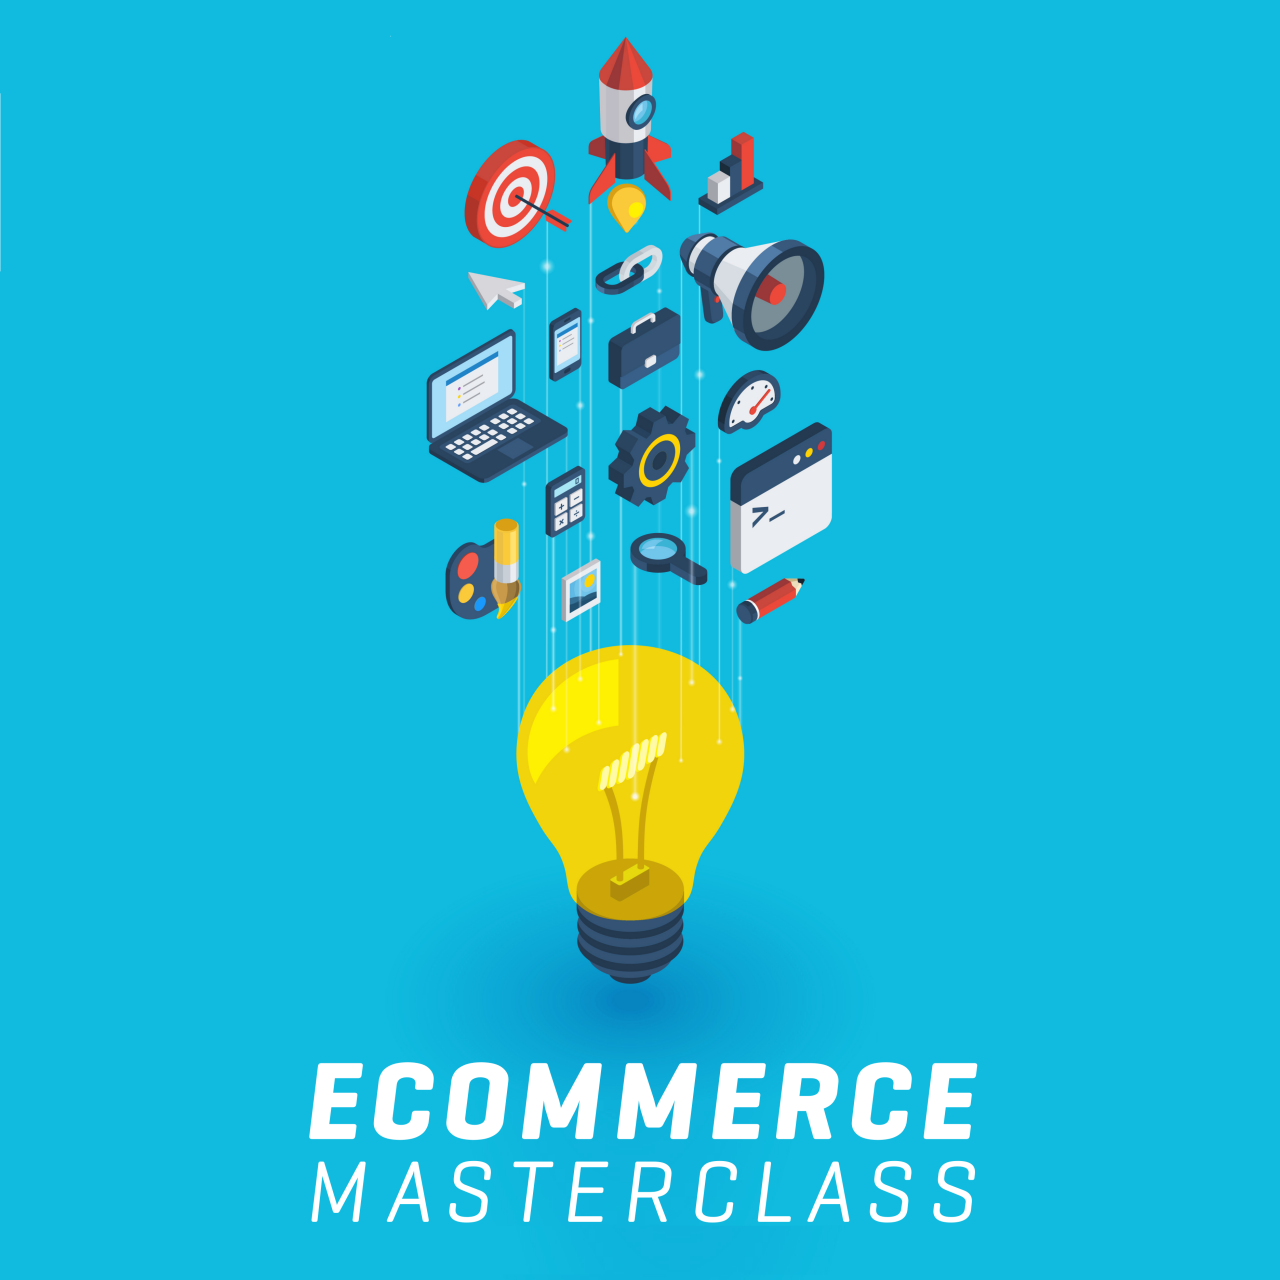 eCommerce Masterclass: How to Build an Online Business [2019 Edition]